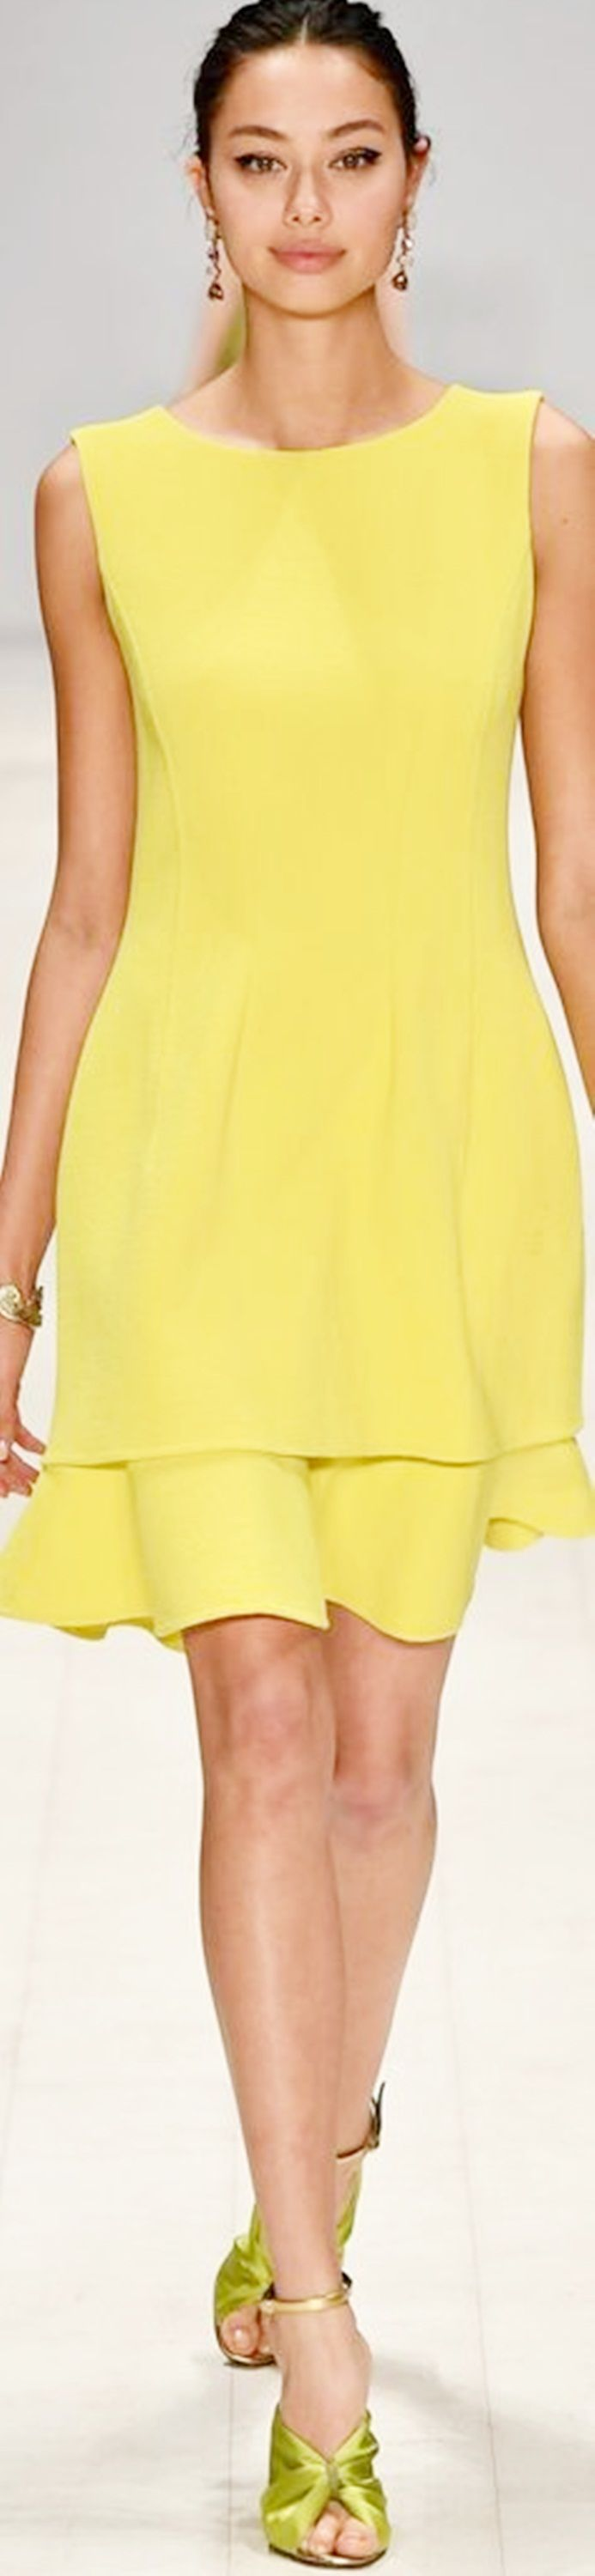 how to style a yellow dress - golf earrings, warm makeup, huge eyes